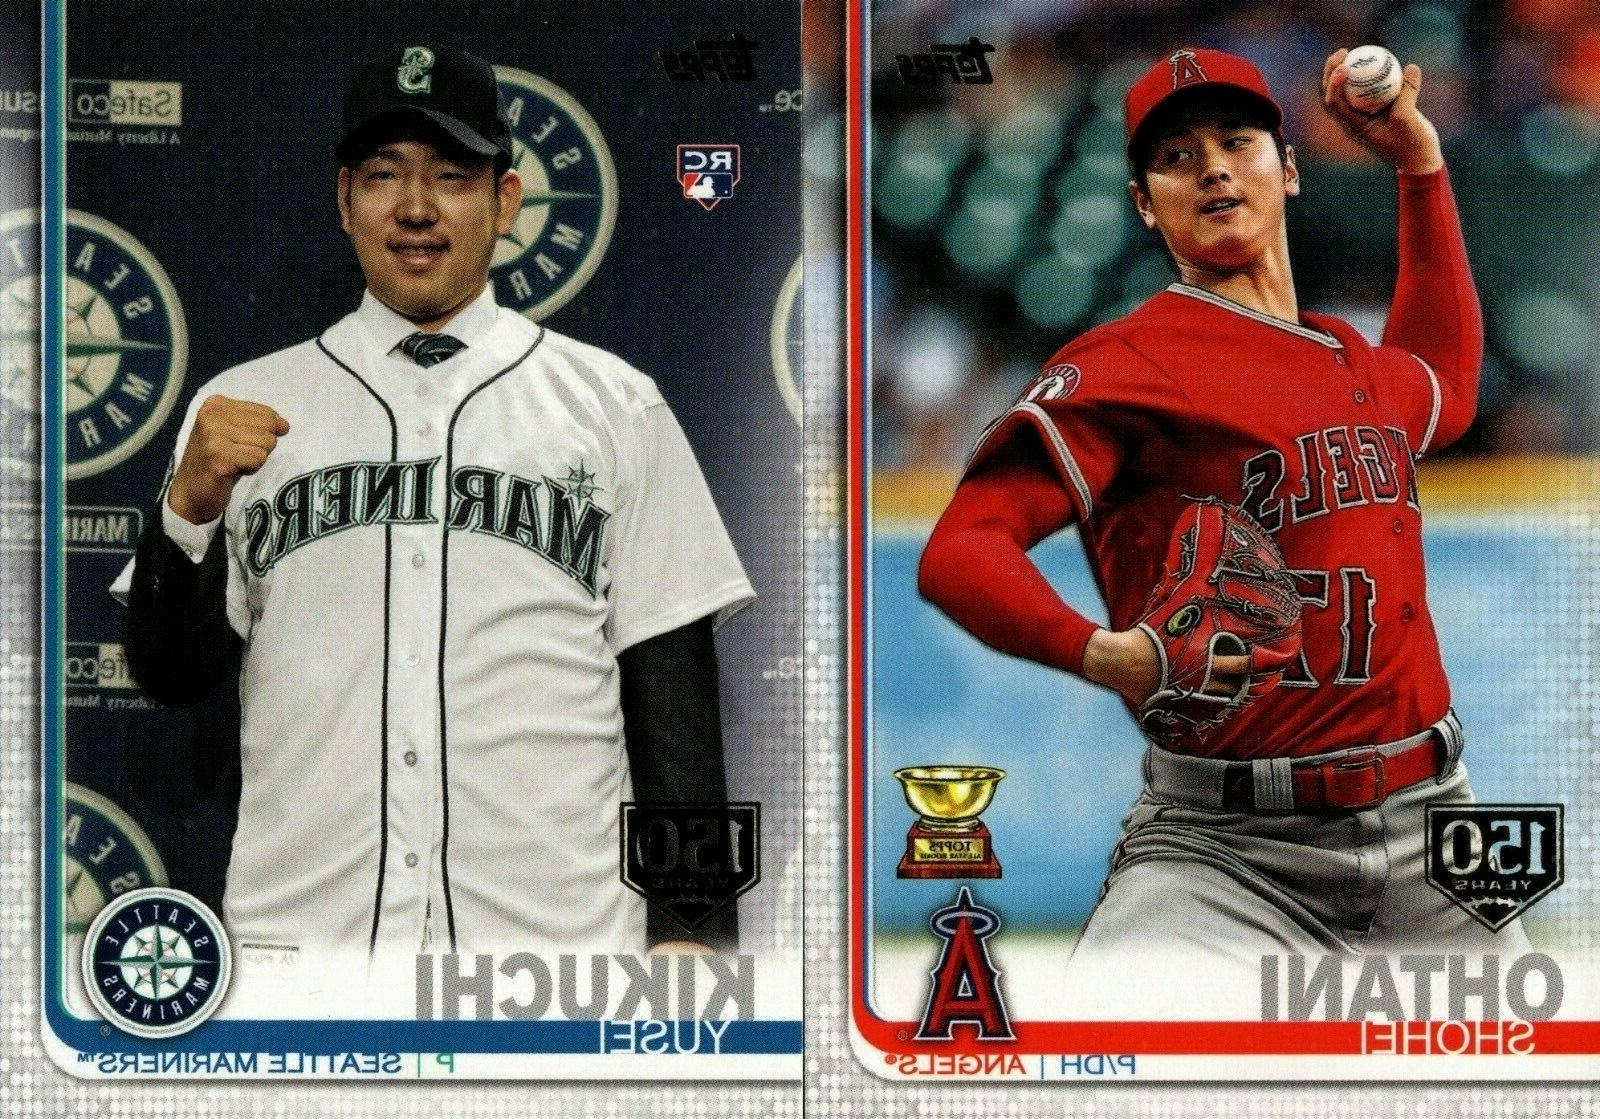 2019 topps series 2 150th anniversary foil